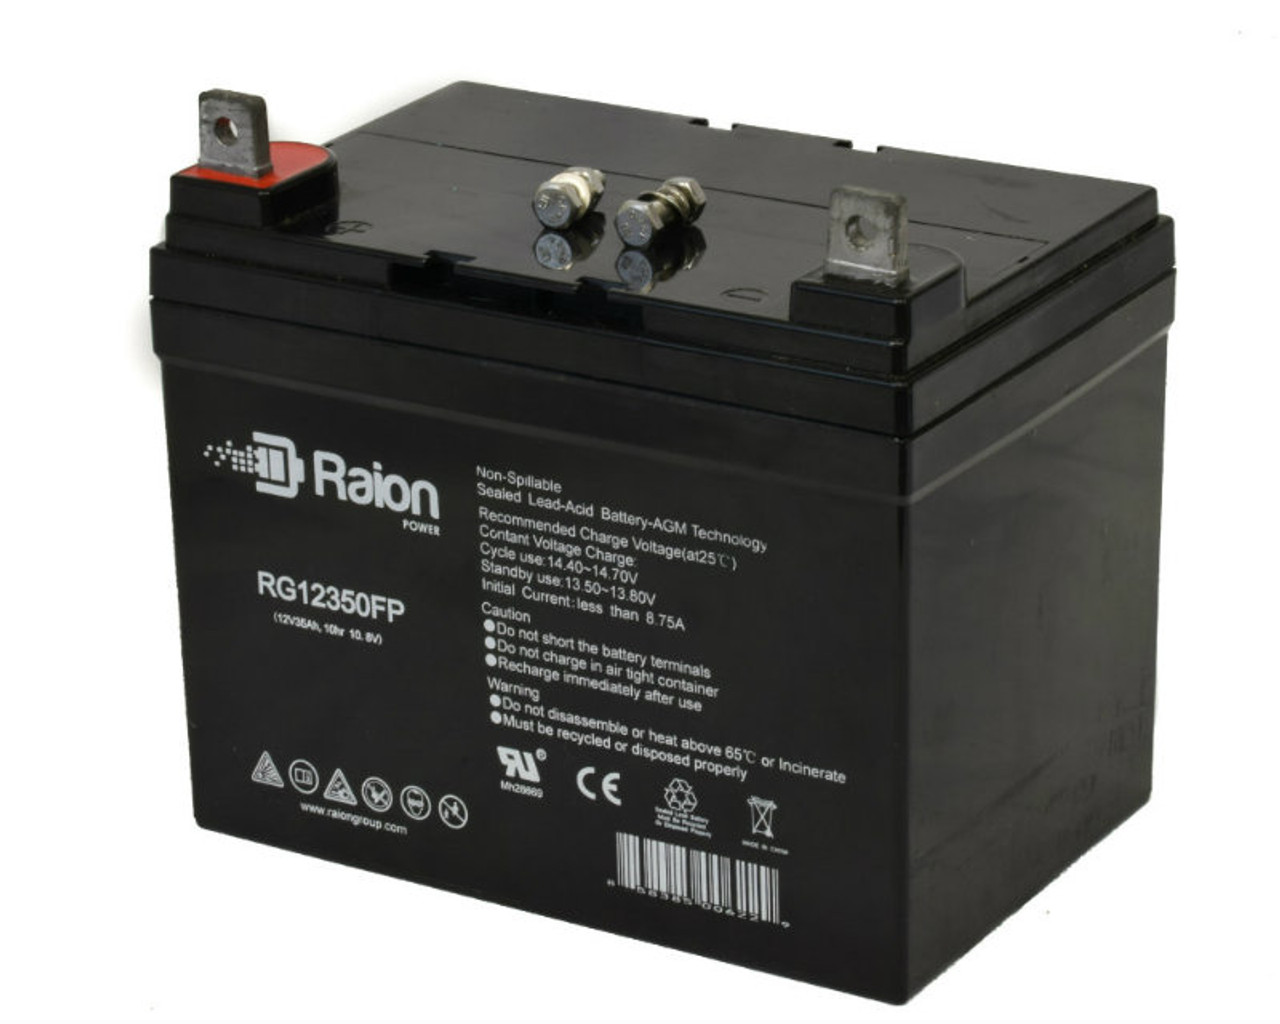 Raion Power RG12350FP Replacement Wheelchair Battery For Damaco Electro-Lite (1 Pack)